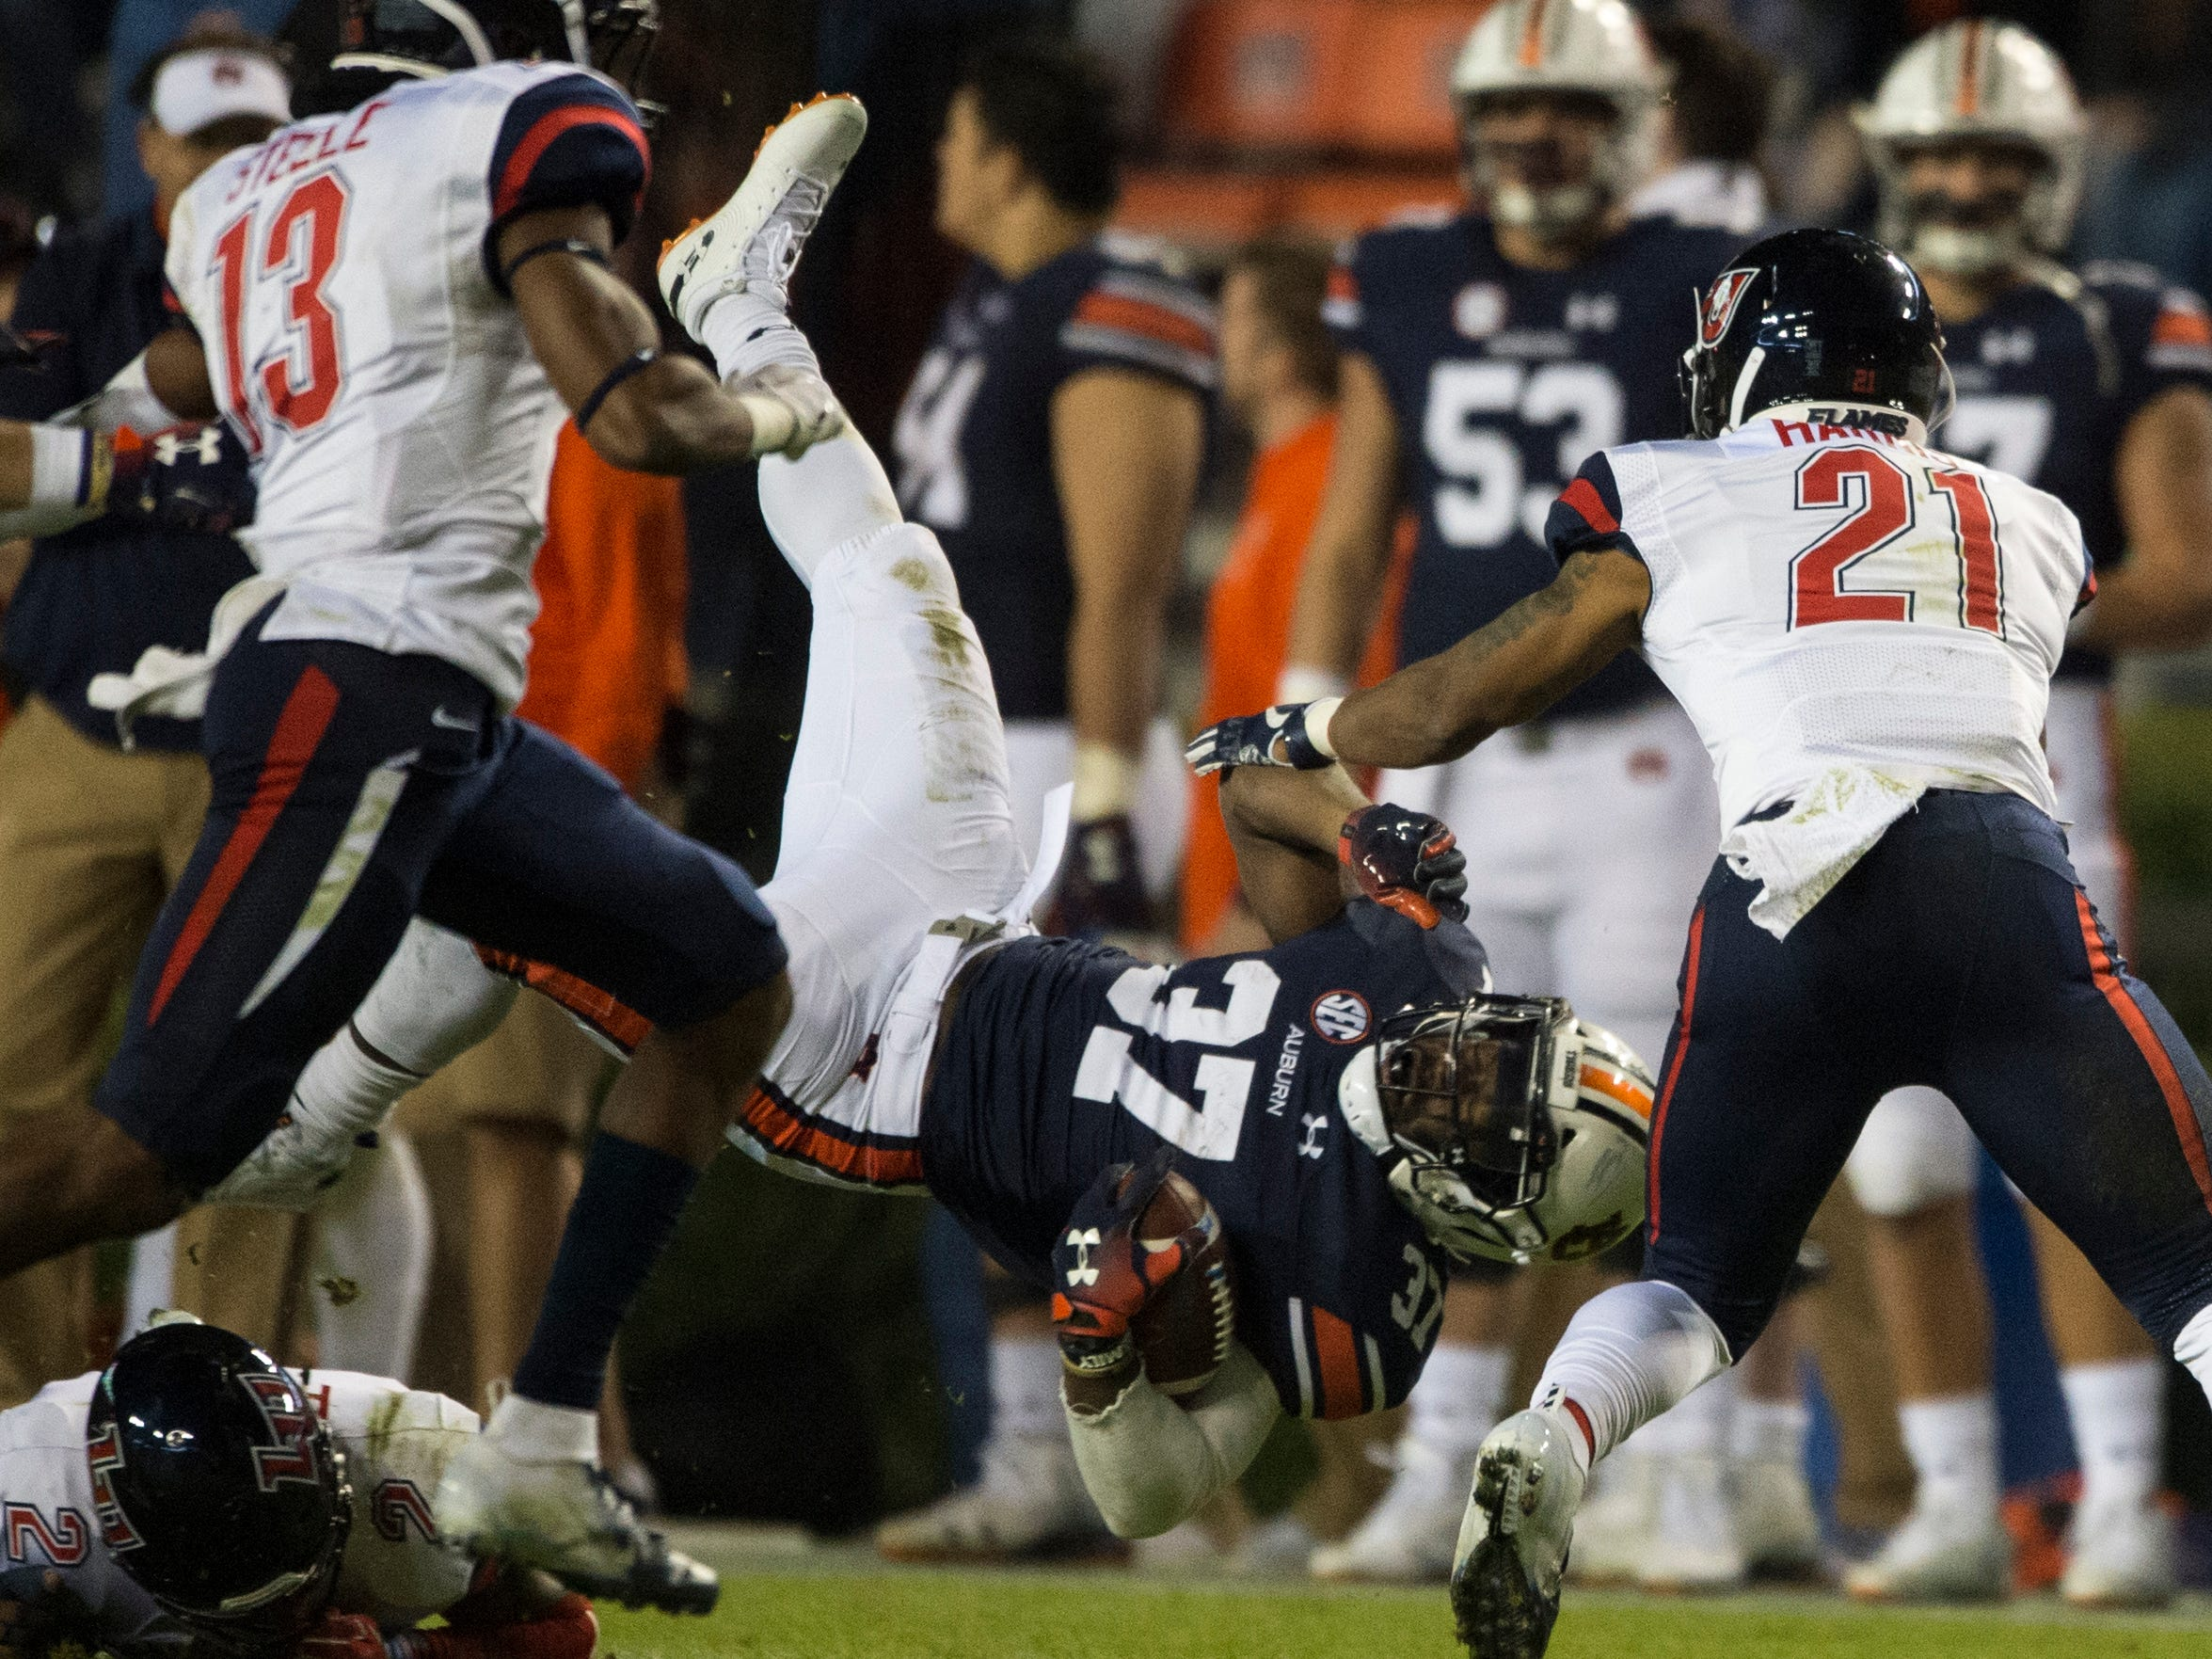 Auburn runing back C.J. Tolbert (37) is flipped upside down as he runs the ball against Liberty at Jordan-Hare Stadium in Auburn, Ala., on Saturday, Nov.. 17, 2018. Auburn defeated Liberty 53-0.